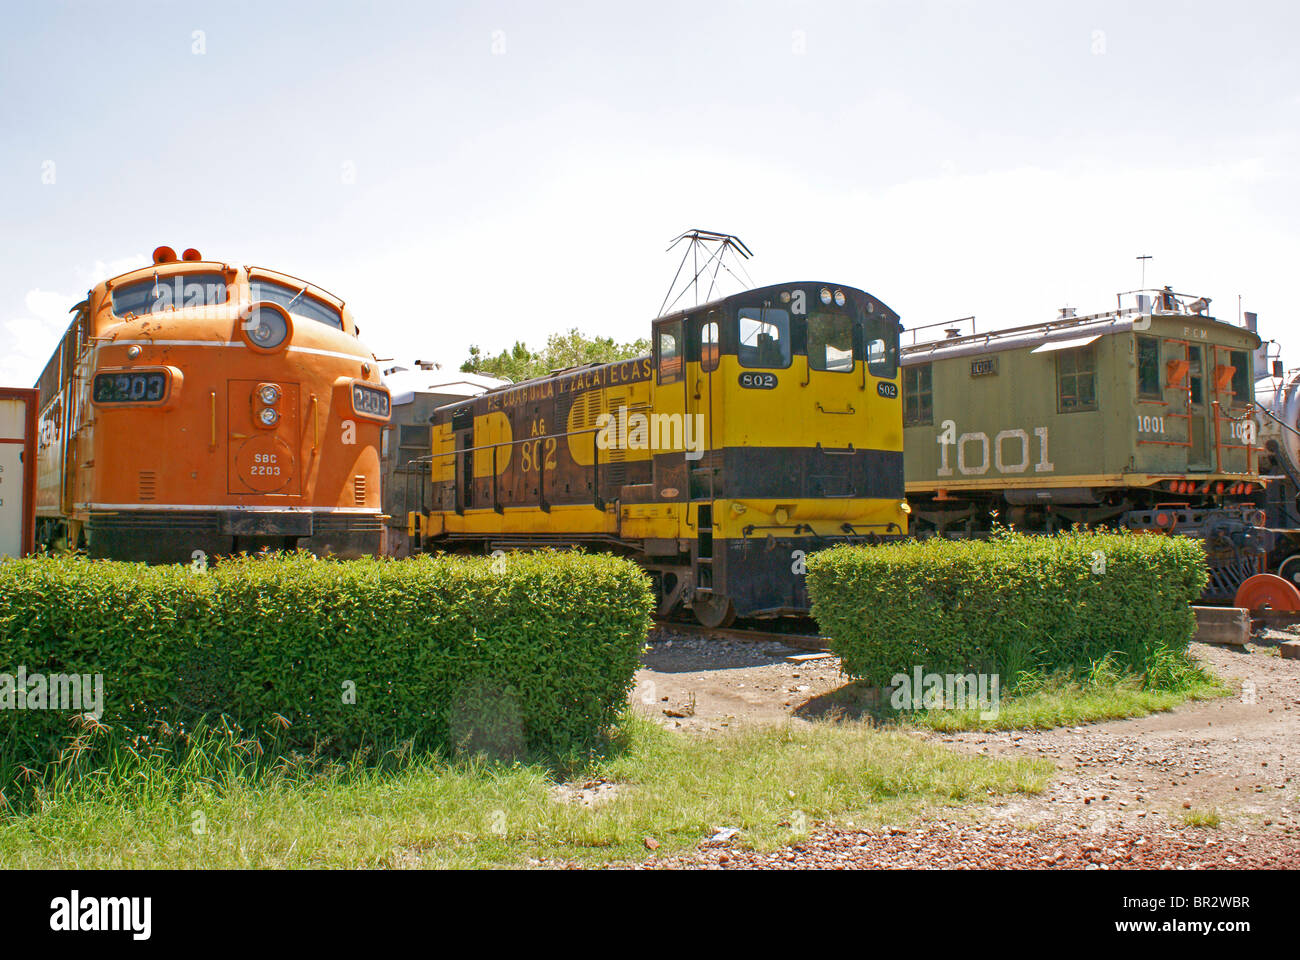 Diesel and electric locomotives at the Museo Nacional de los Ferrocarriles Mexicanos or National Railway Museum, - Stock Image